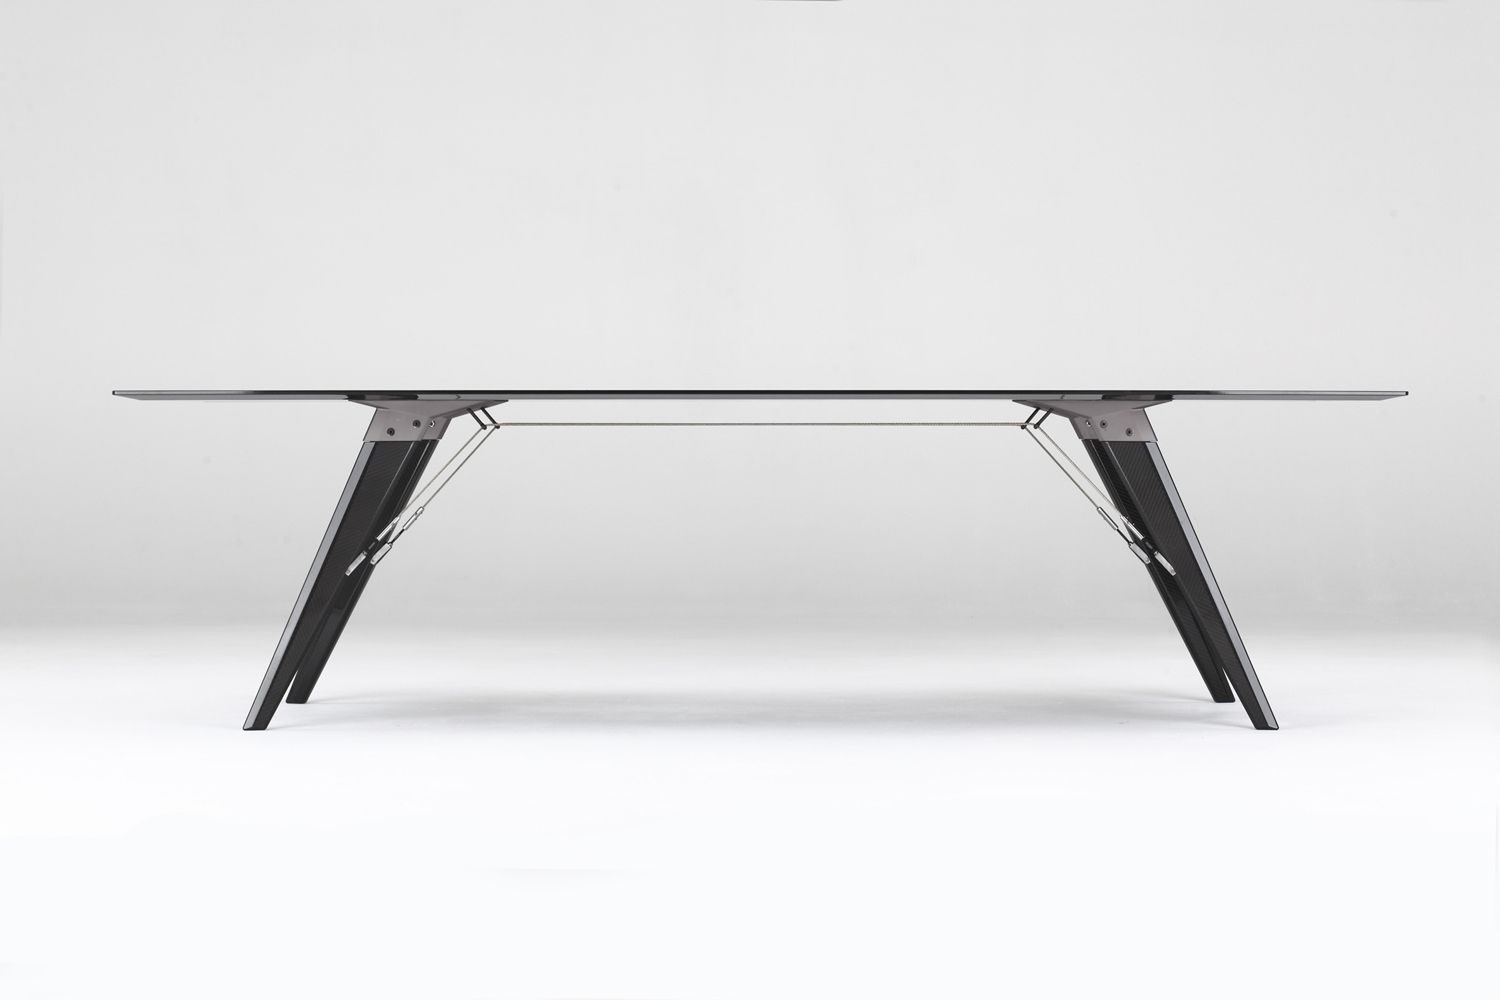 Carbon Fiber Table In 2020